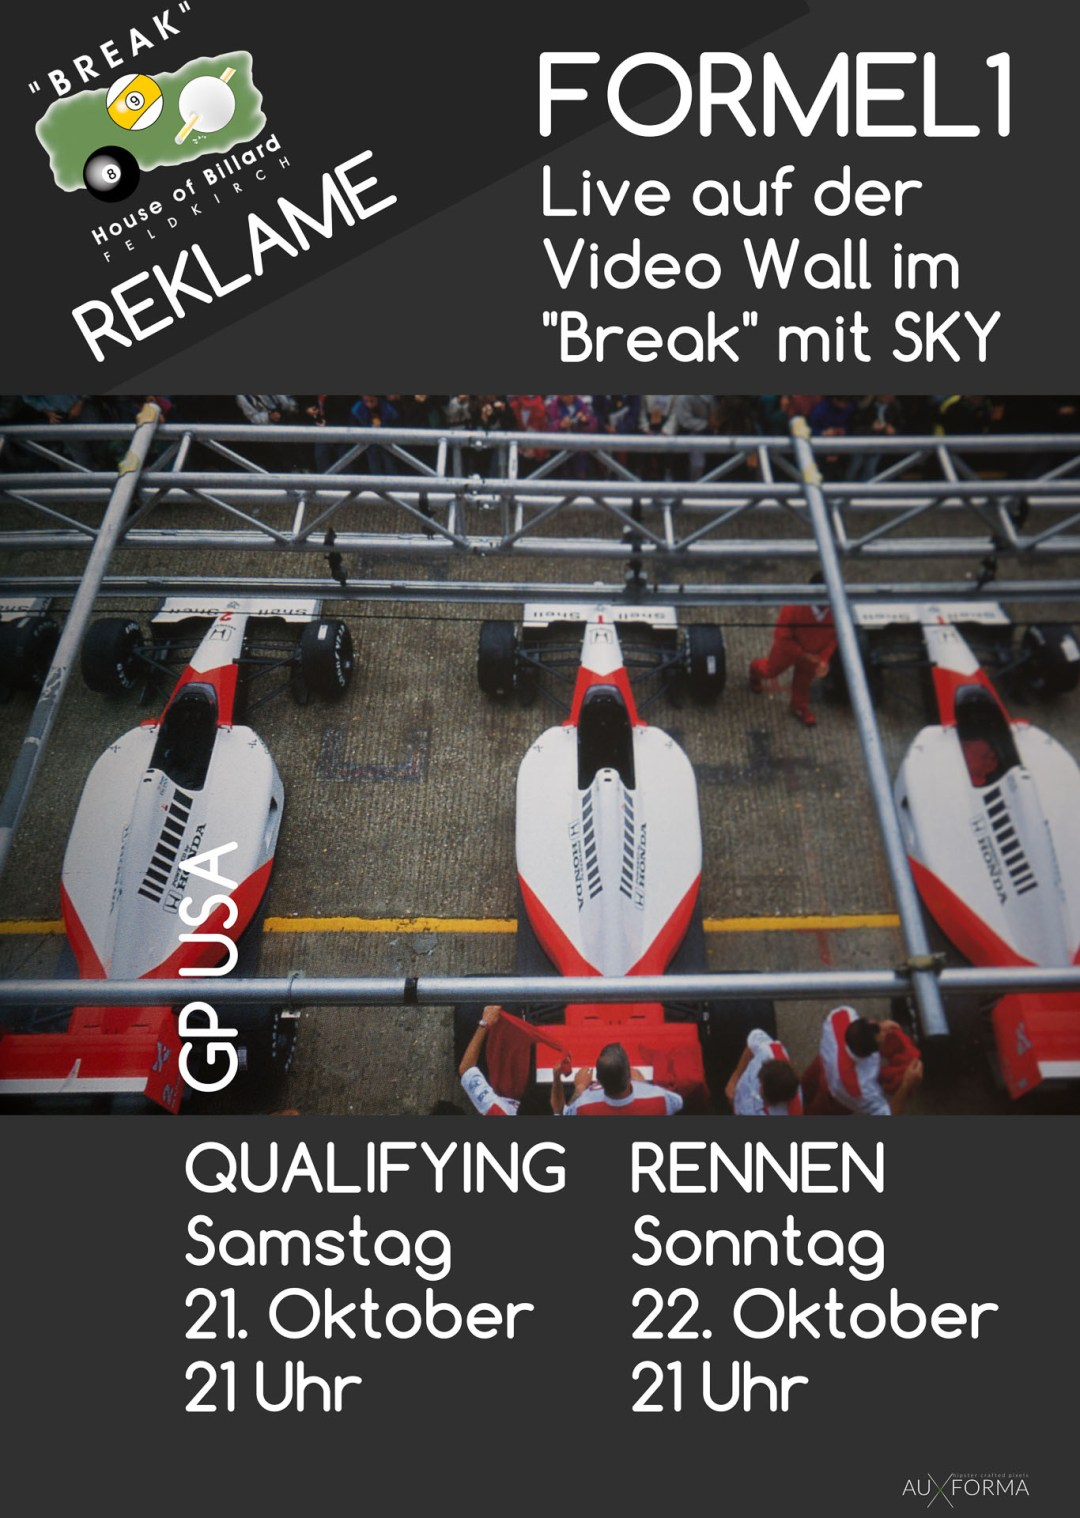 FORMEL 1 GRAND PRIX DER USA